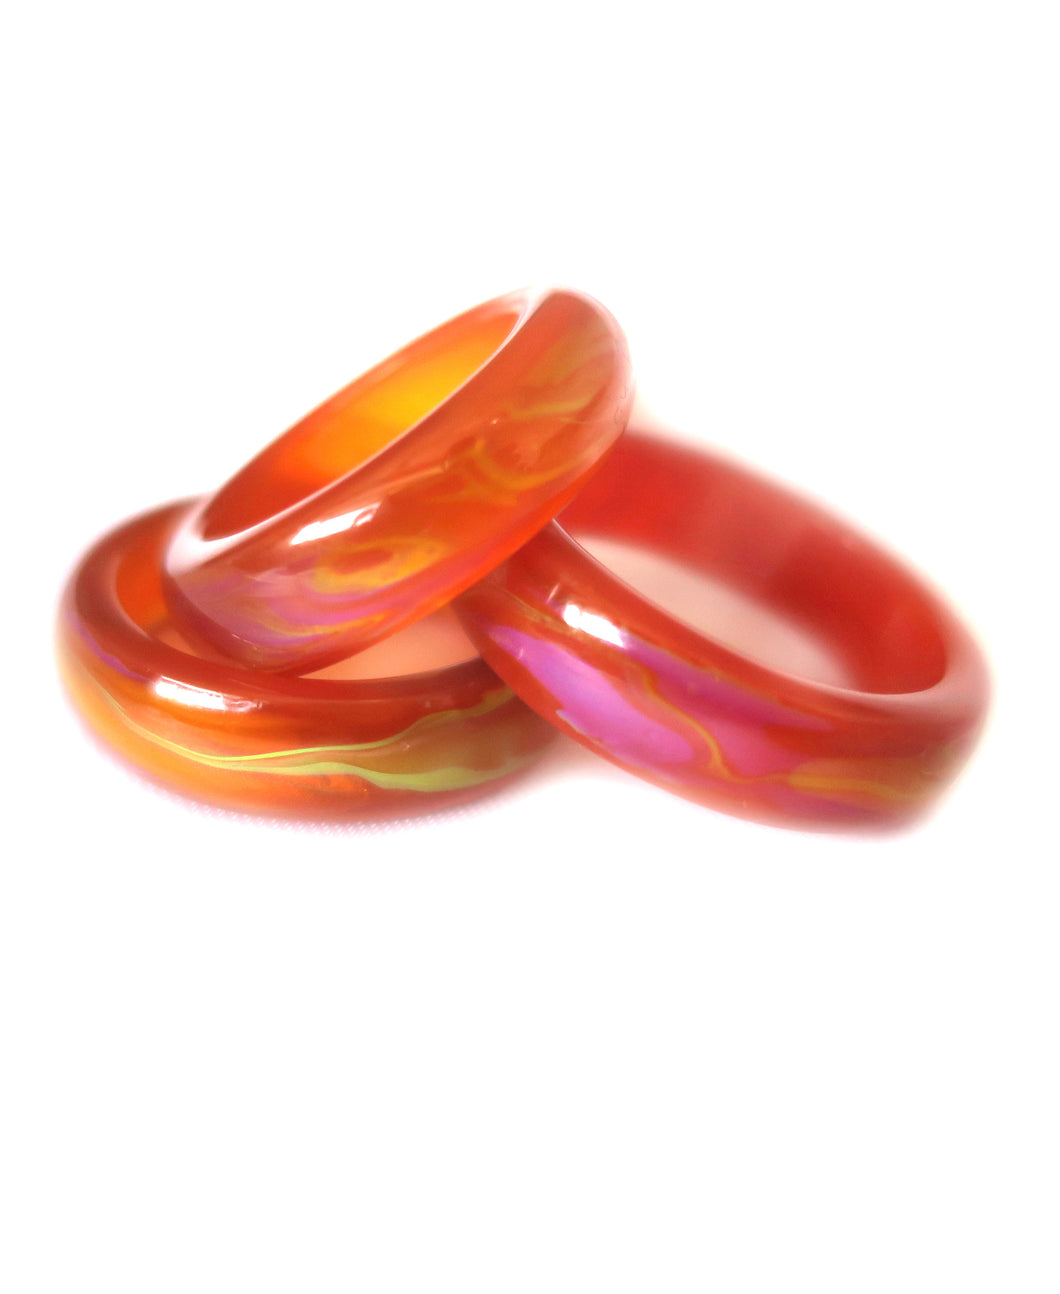 Agate Mood Ring